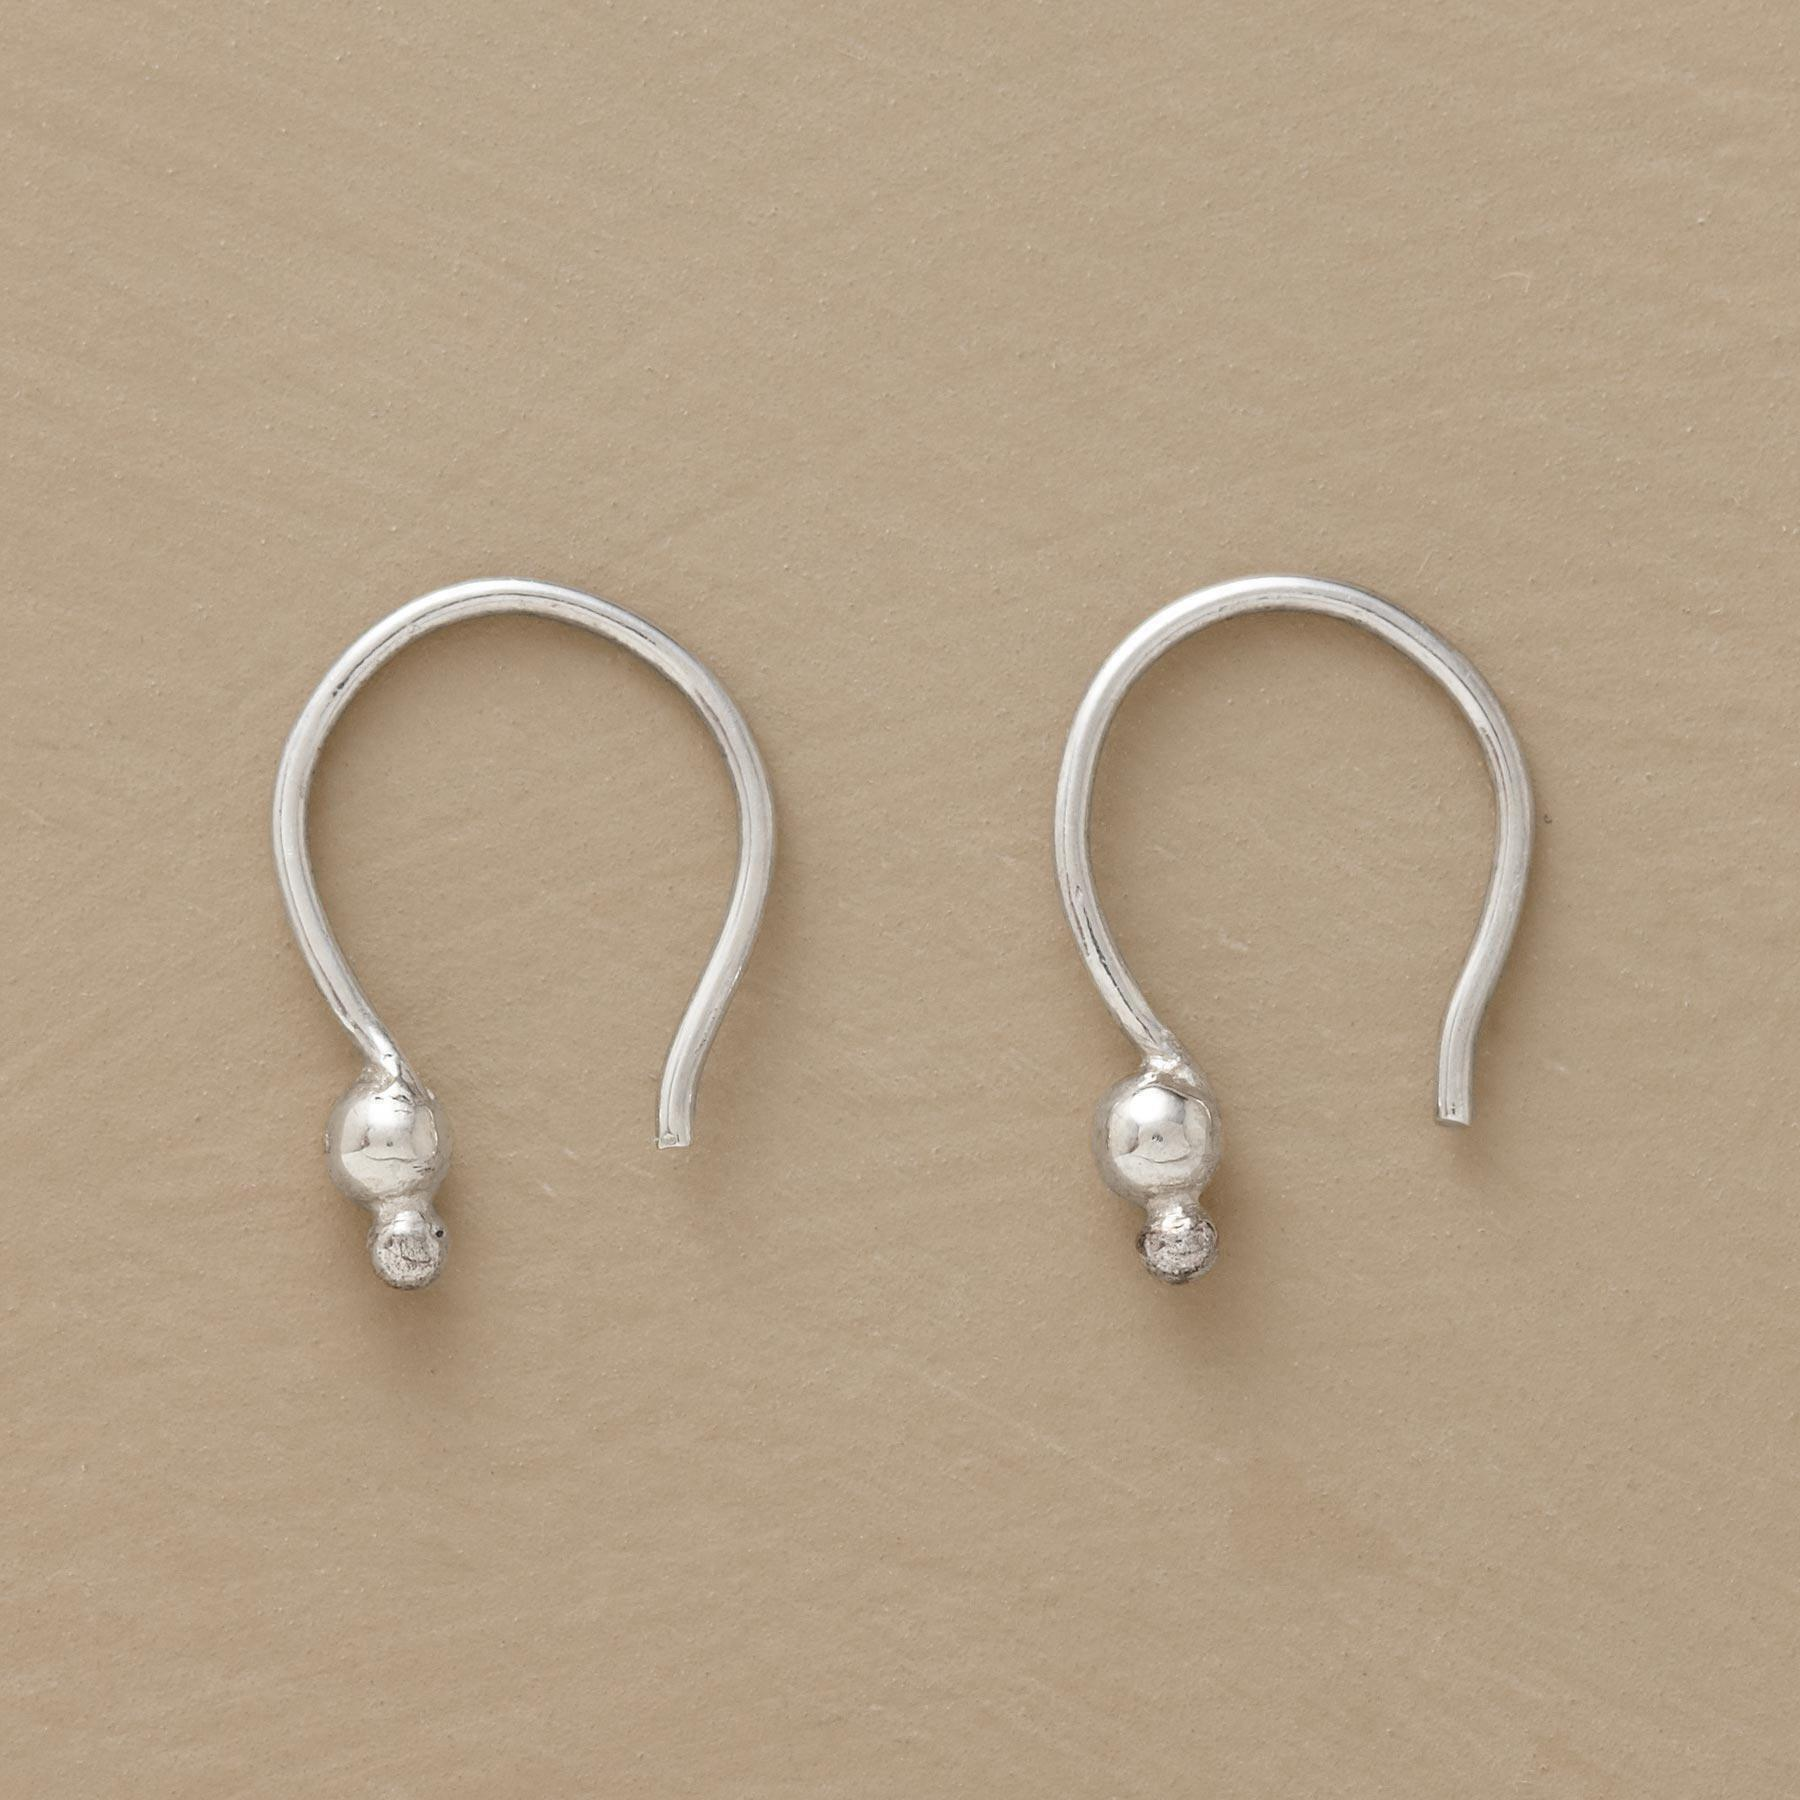 STERLING SILVER DOUBLE DOT EARRINGS: View 1